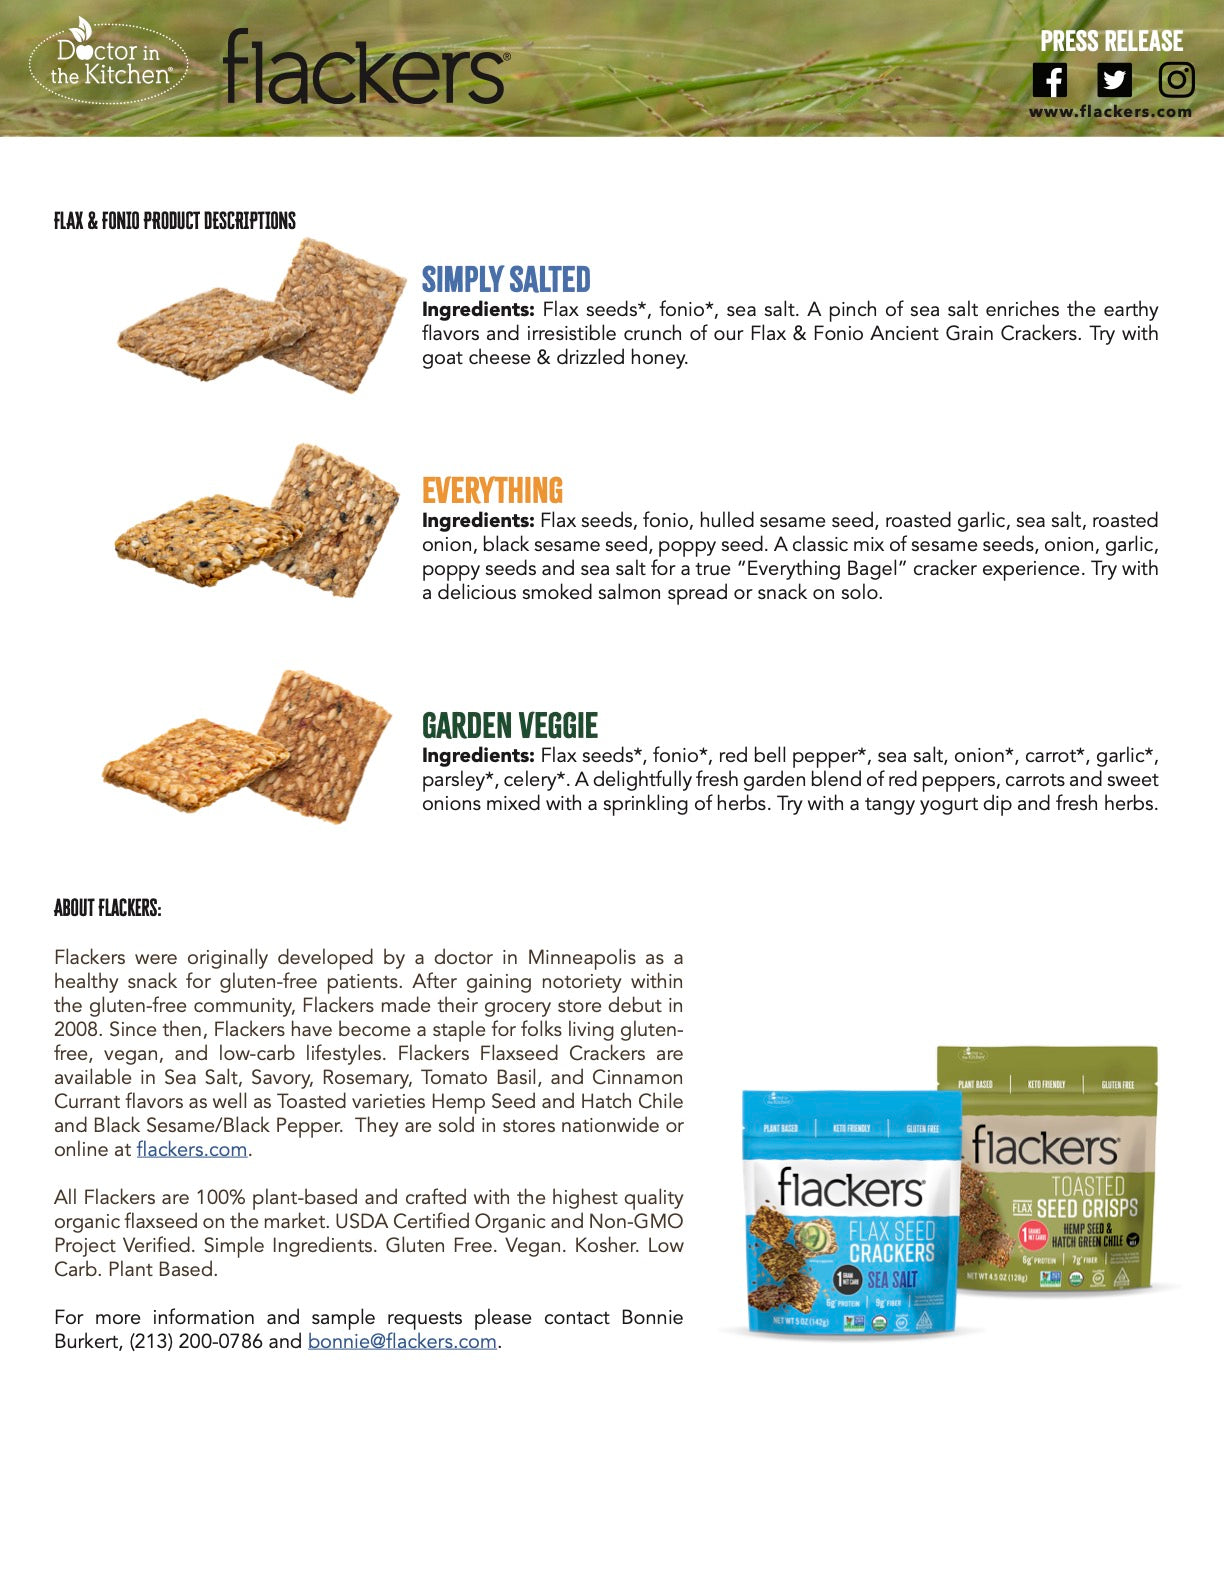 Flackers Flax & Fonio Ancient Grain Crackers press release page 2